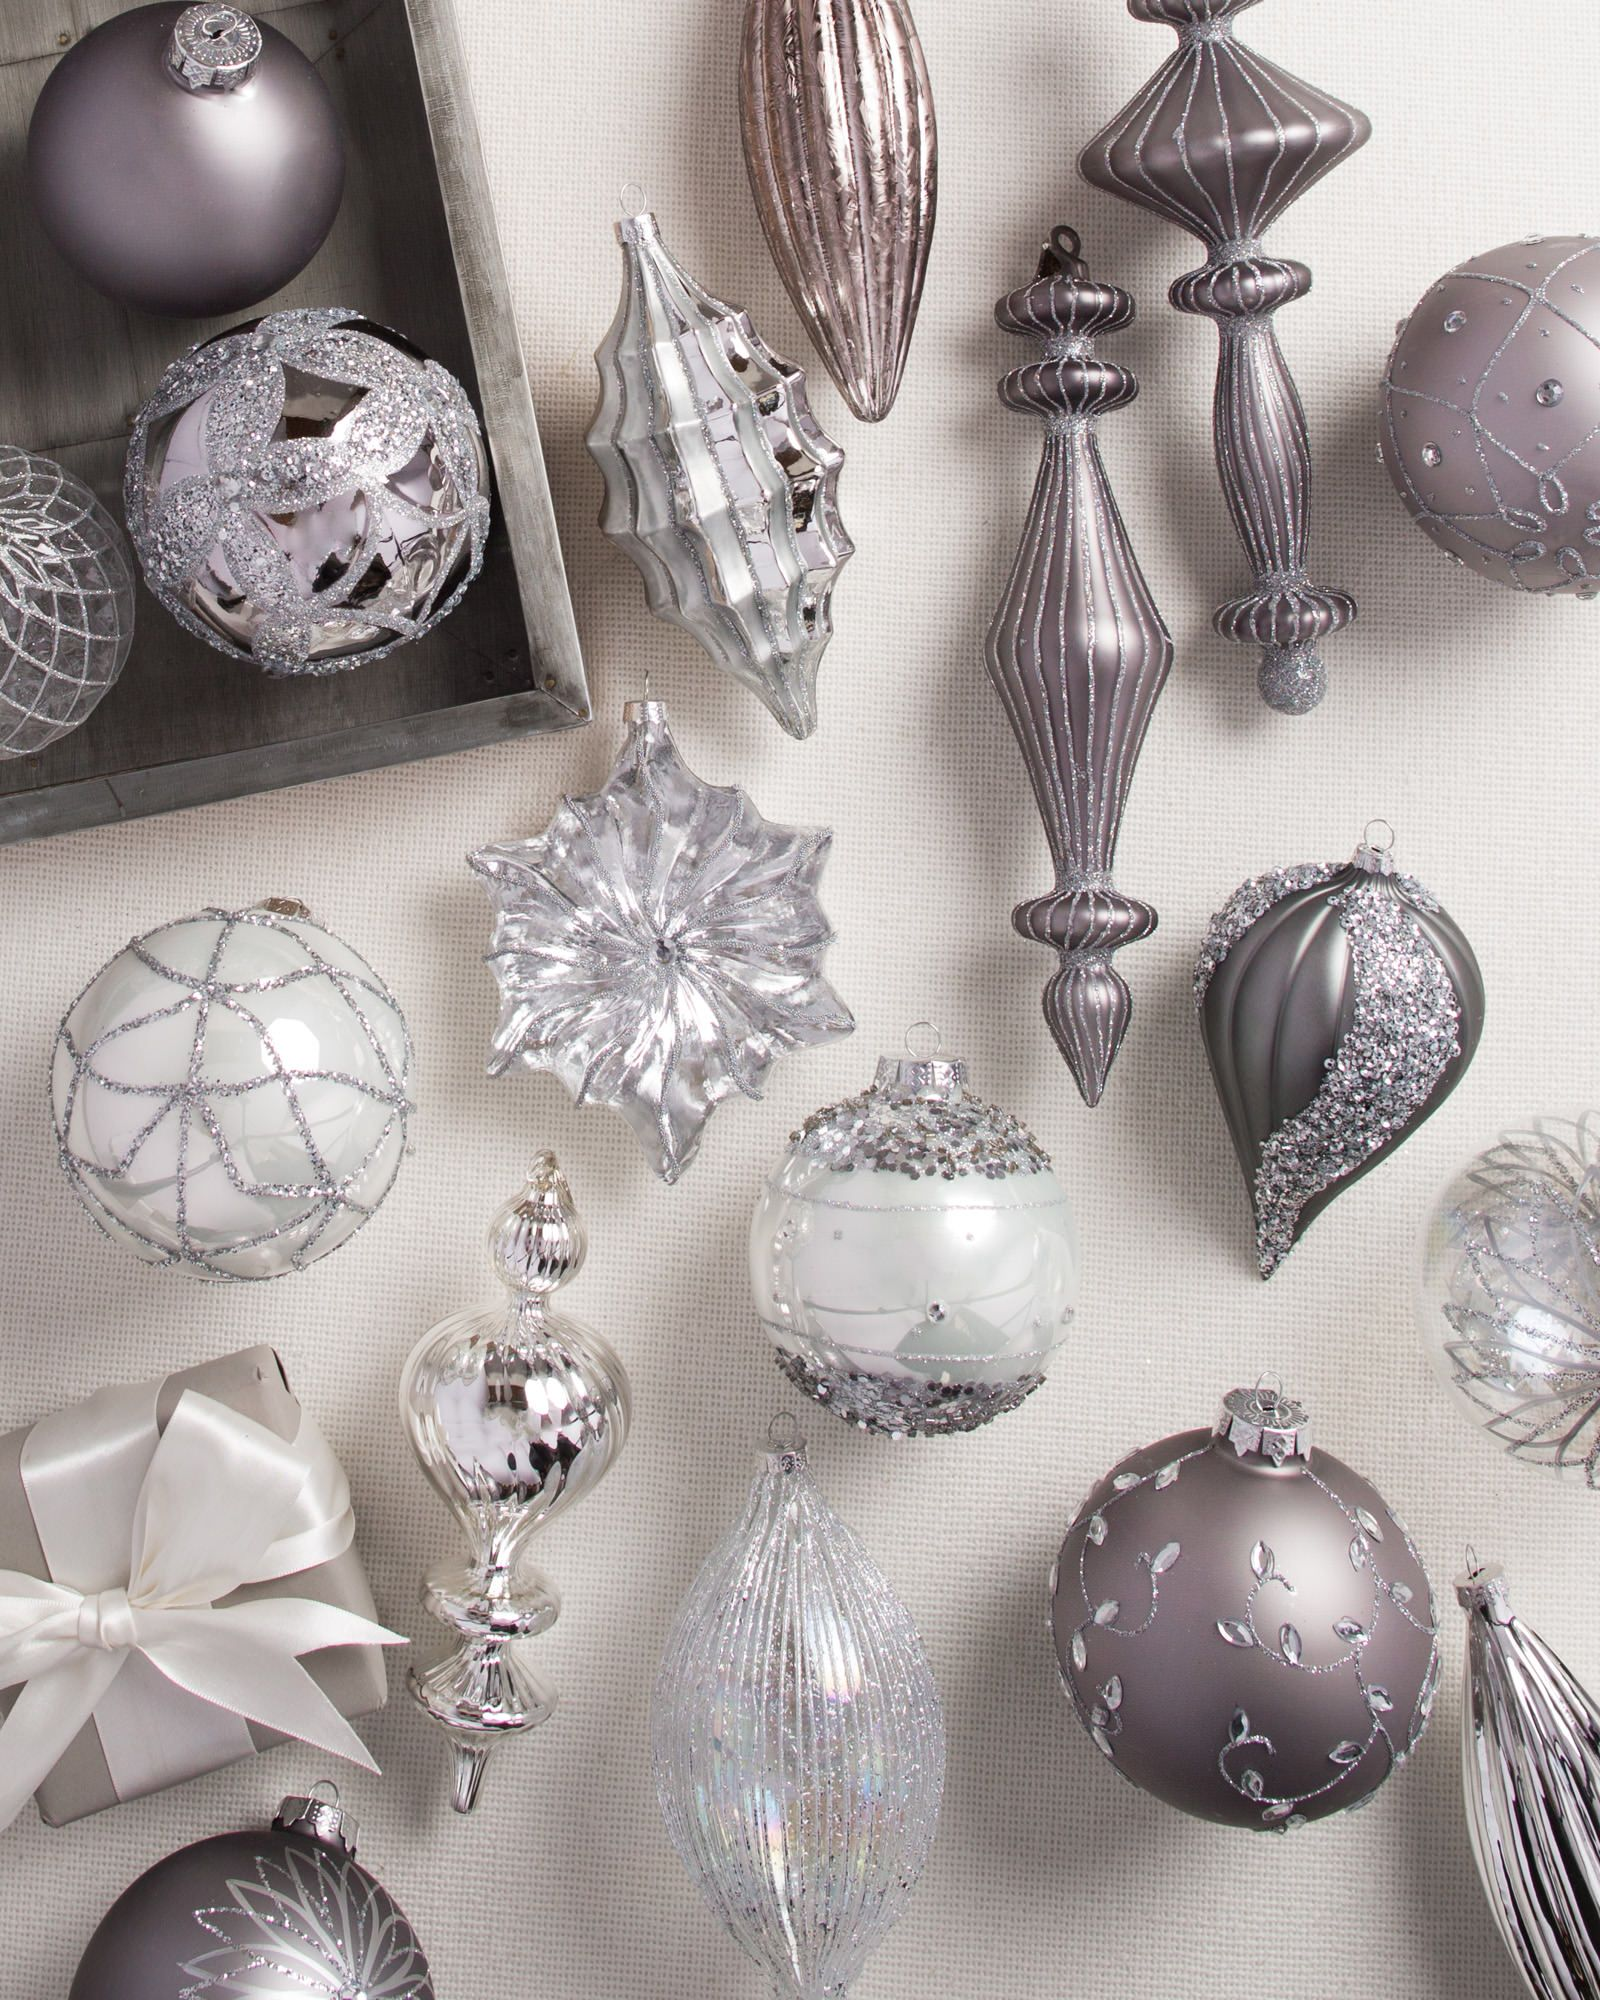 Set Of 35 Crystal Palace Glass Ornaments - Balsam Hill